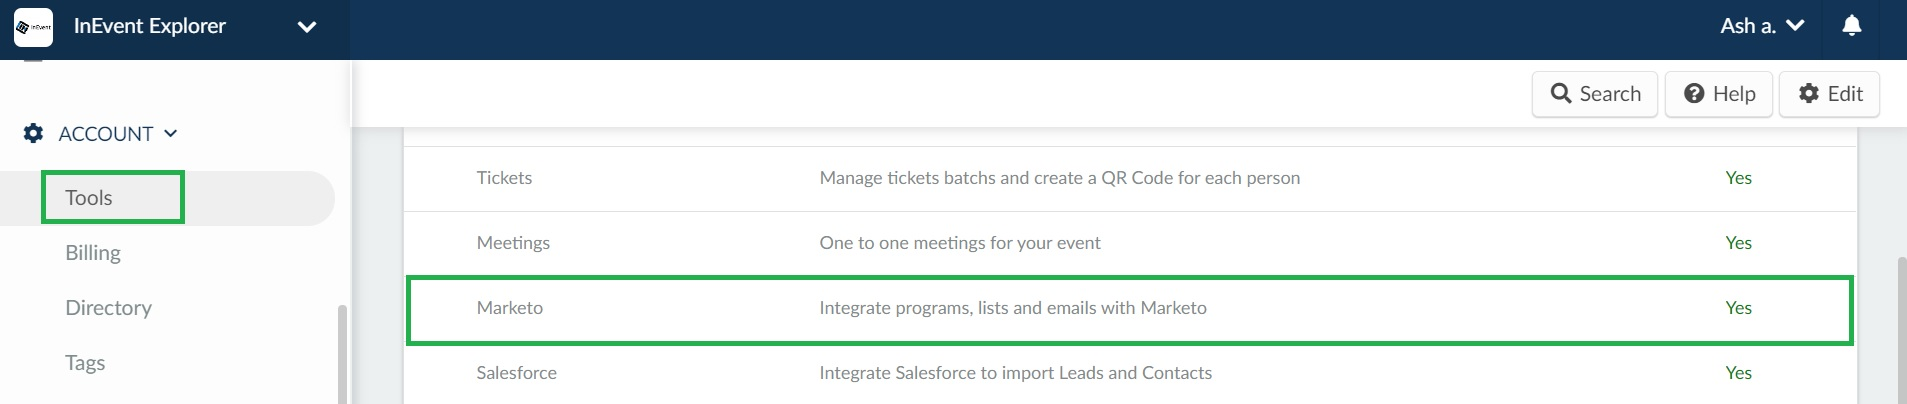 How to enable Marketo